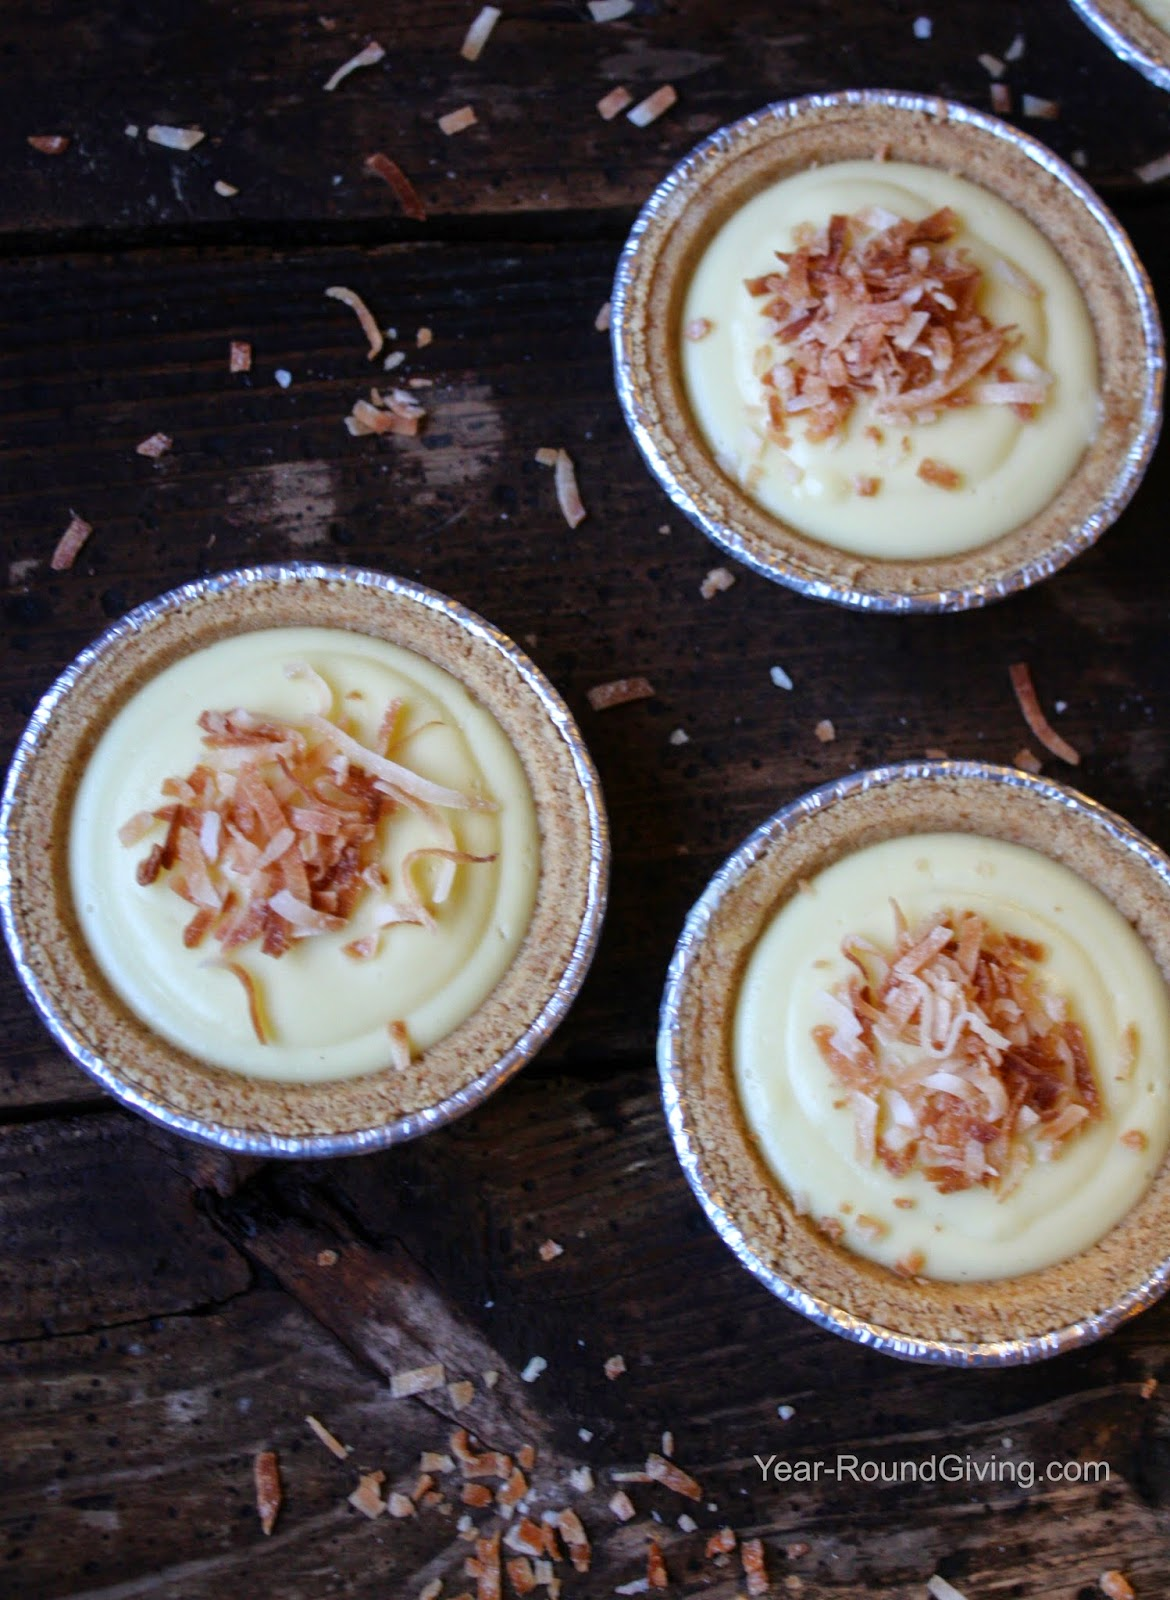 Homemade Coconut Cream Pudding. So easy and so good you will wonder why you haven't made it before!